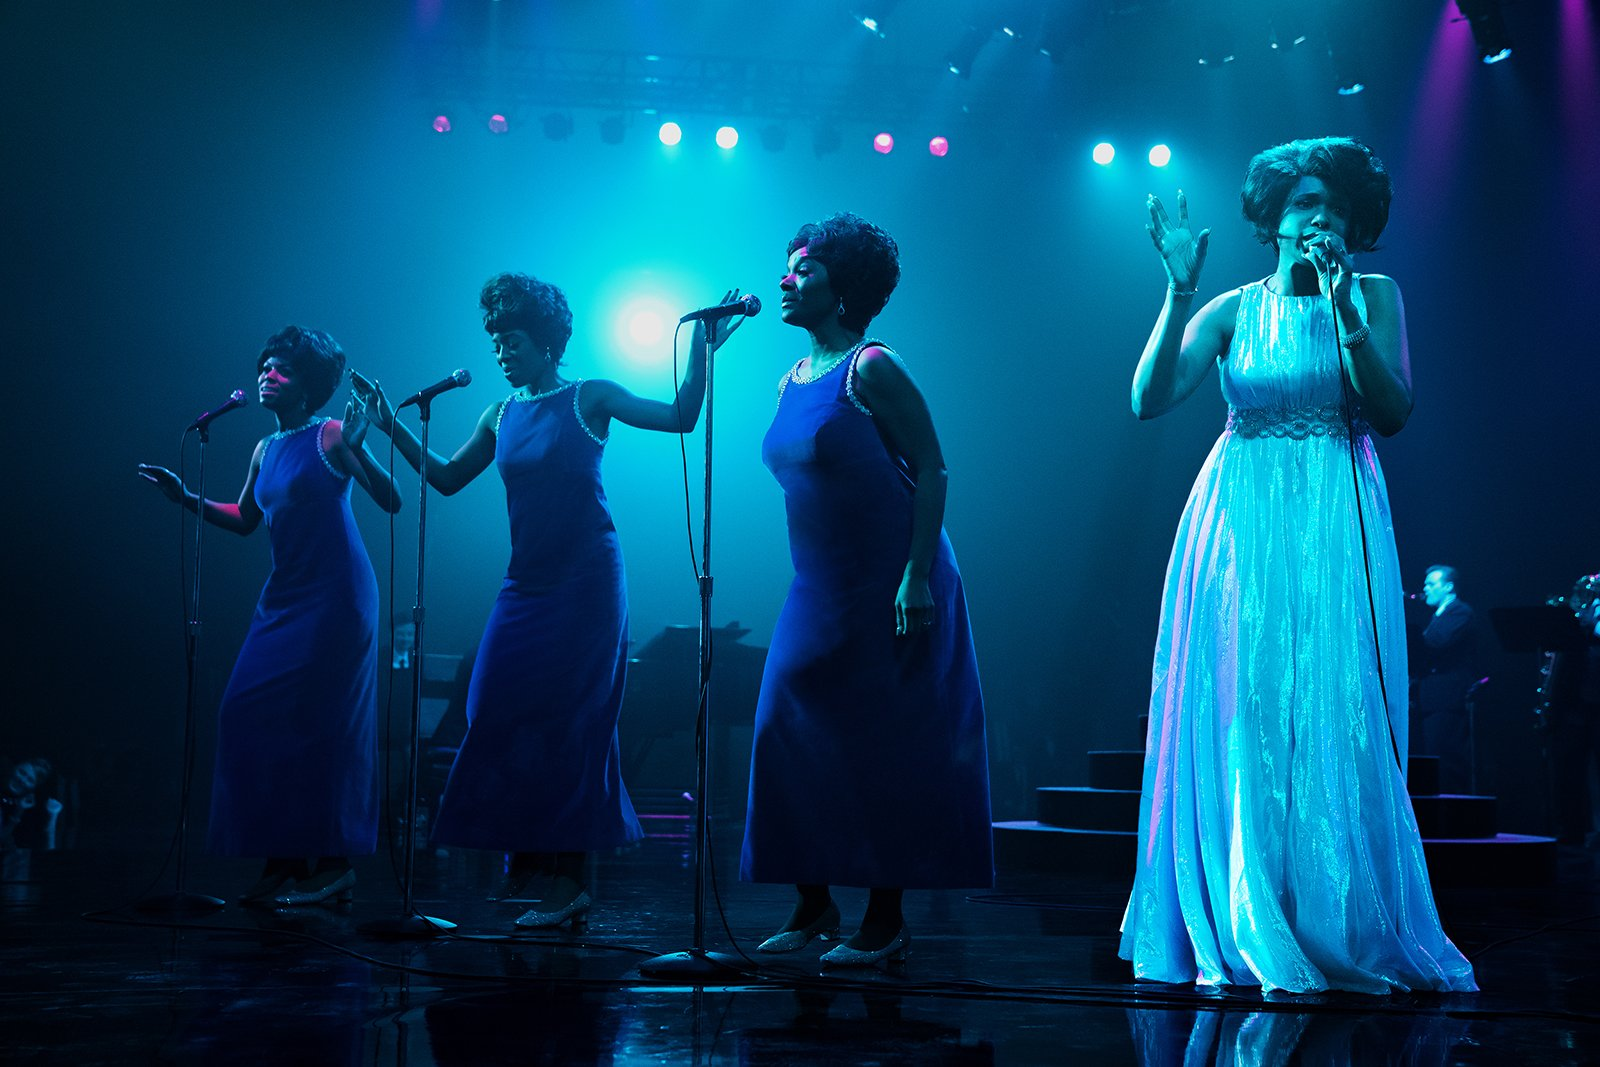 """Brenda Nicole Moorer, from left, as Brenda Franklin, Hailey Kilgore as Carolyn Franklin, Saycon Sengbloh as Erma Franklin and Jennifer Hudson as Aretha Franklin in a scene from """"Respect,"""" a Metro Goldwyn Mayer Pictures film. Photo by Quantrell D. Colbert/© 2021 Metro-Goldwyn-Mayer Pictures Inc. All Rights Reserved."""